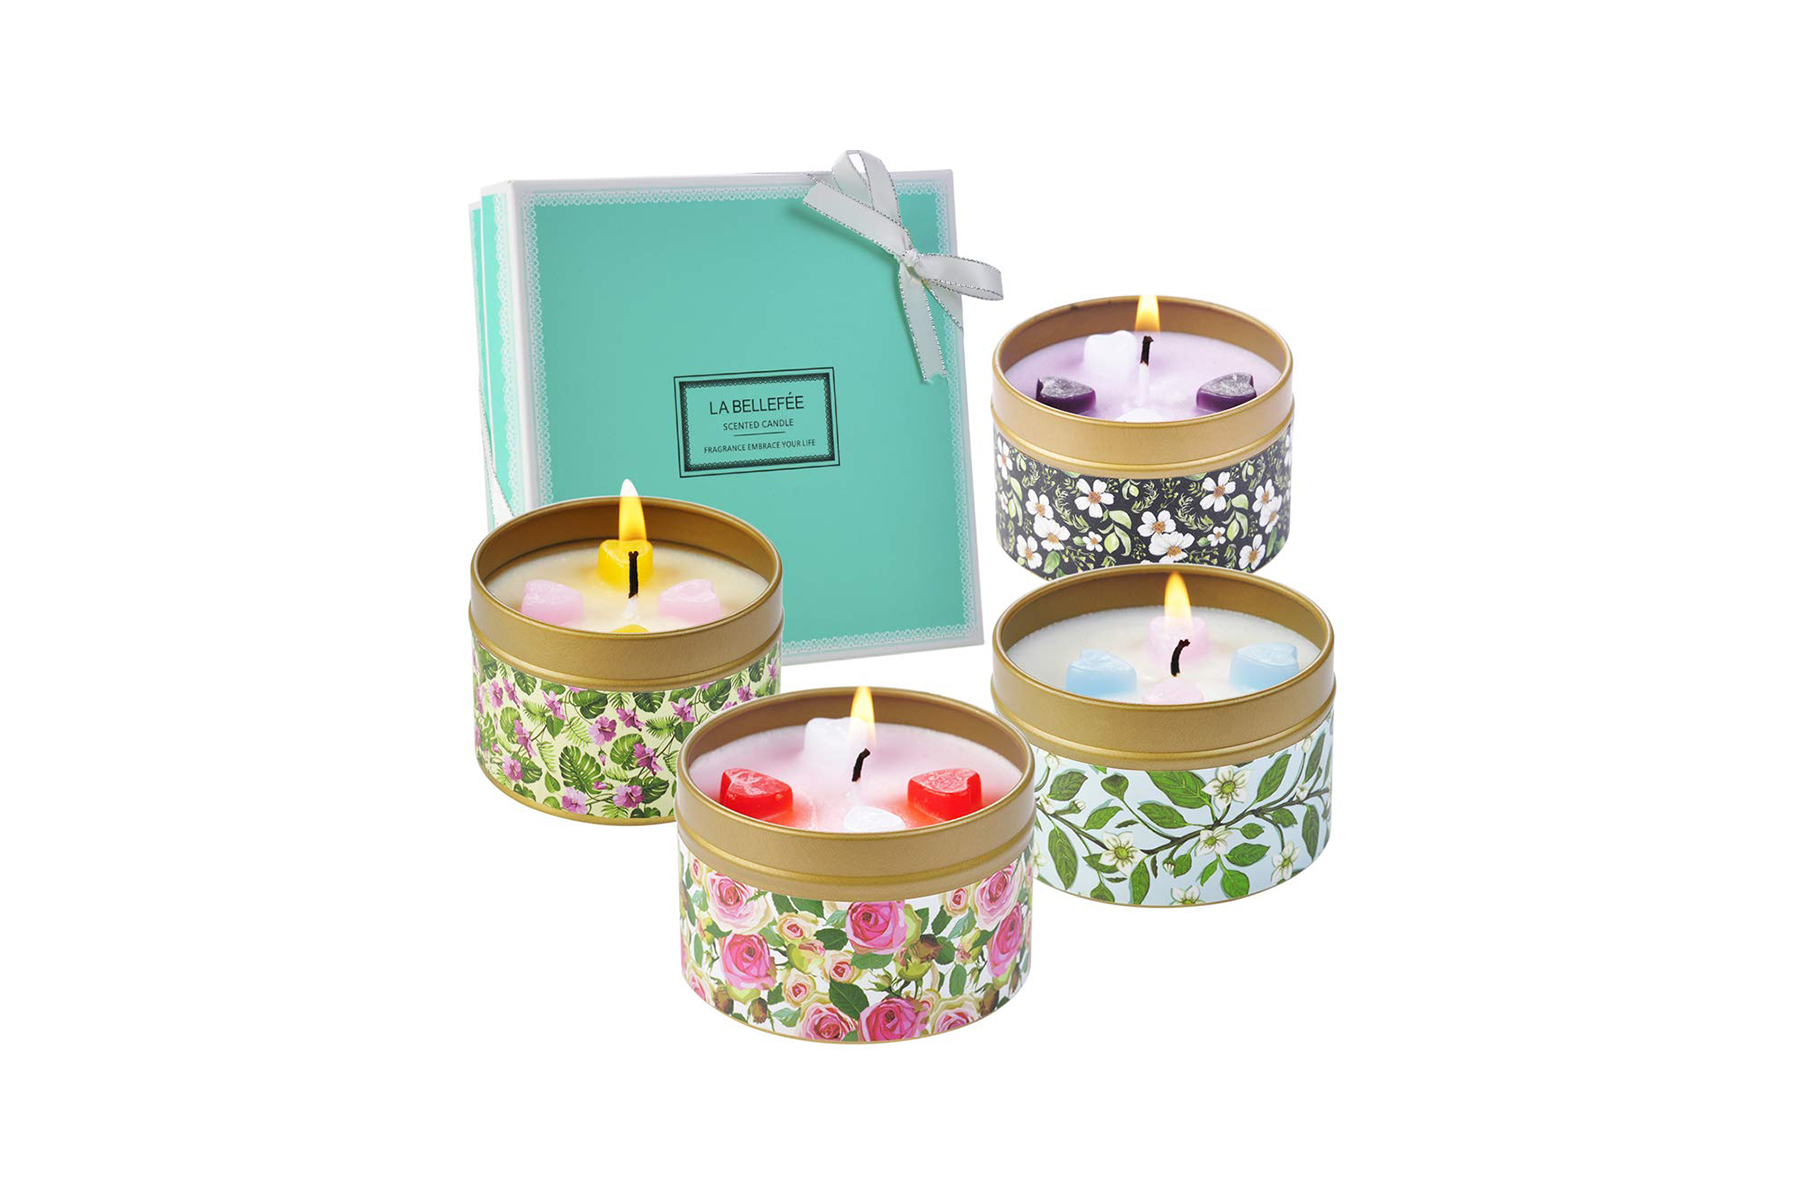 Scented Candles in Printed Tins for Easter